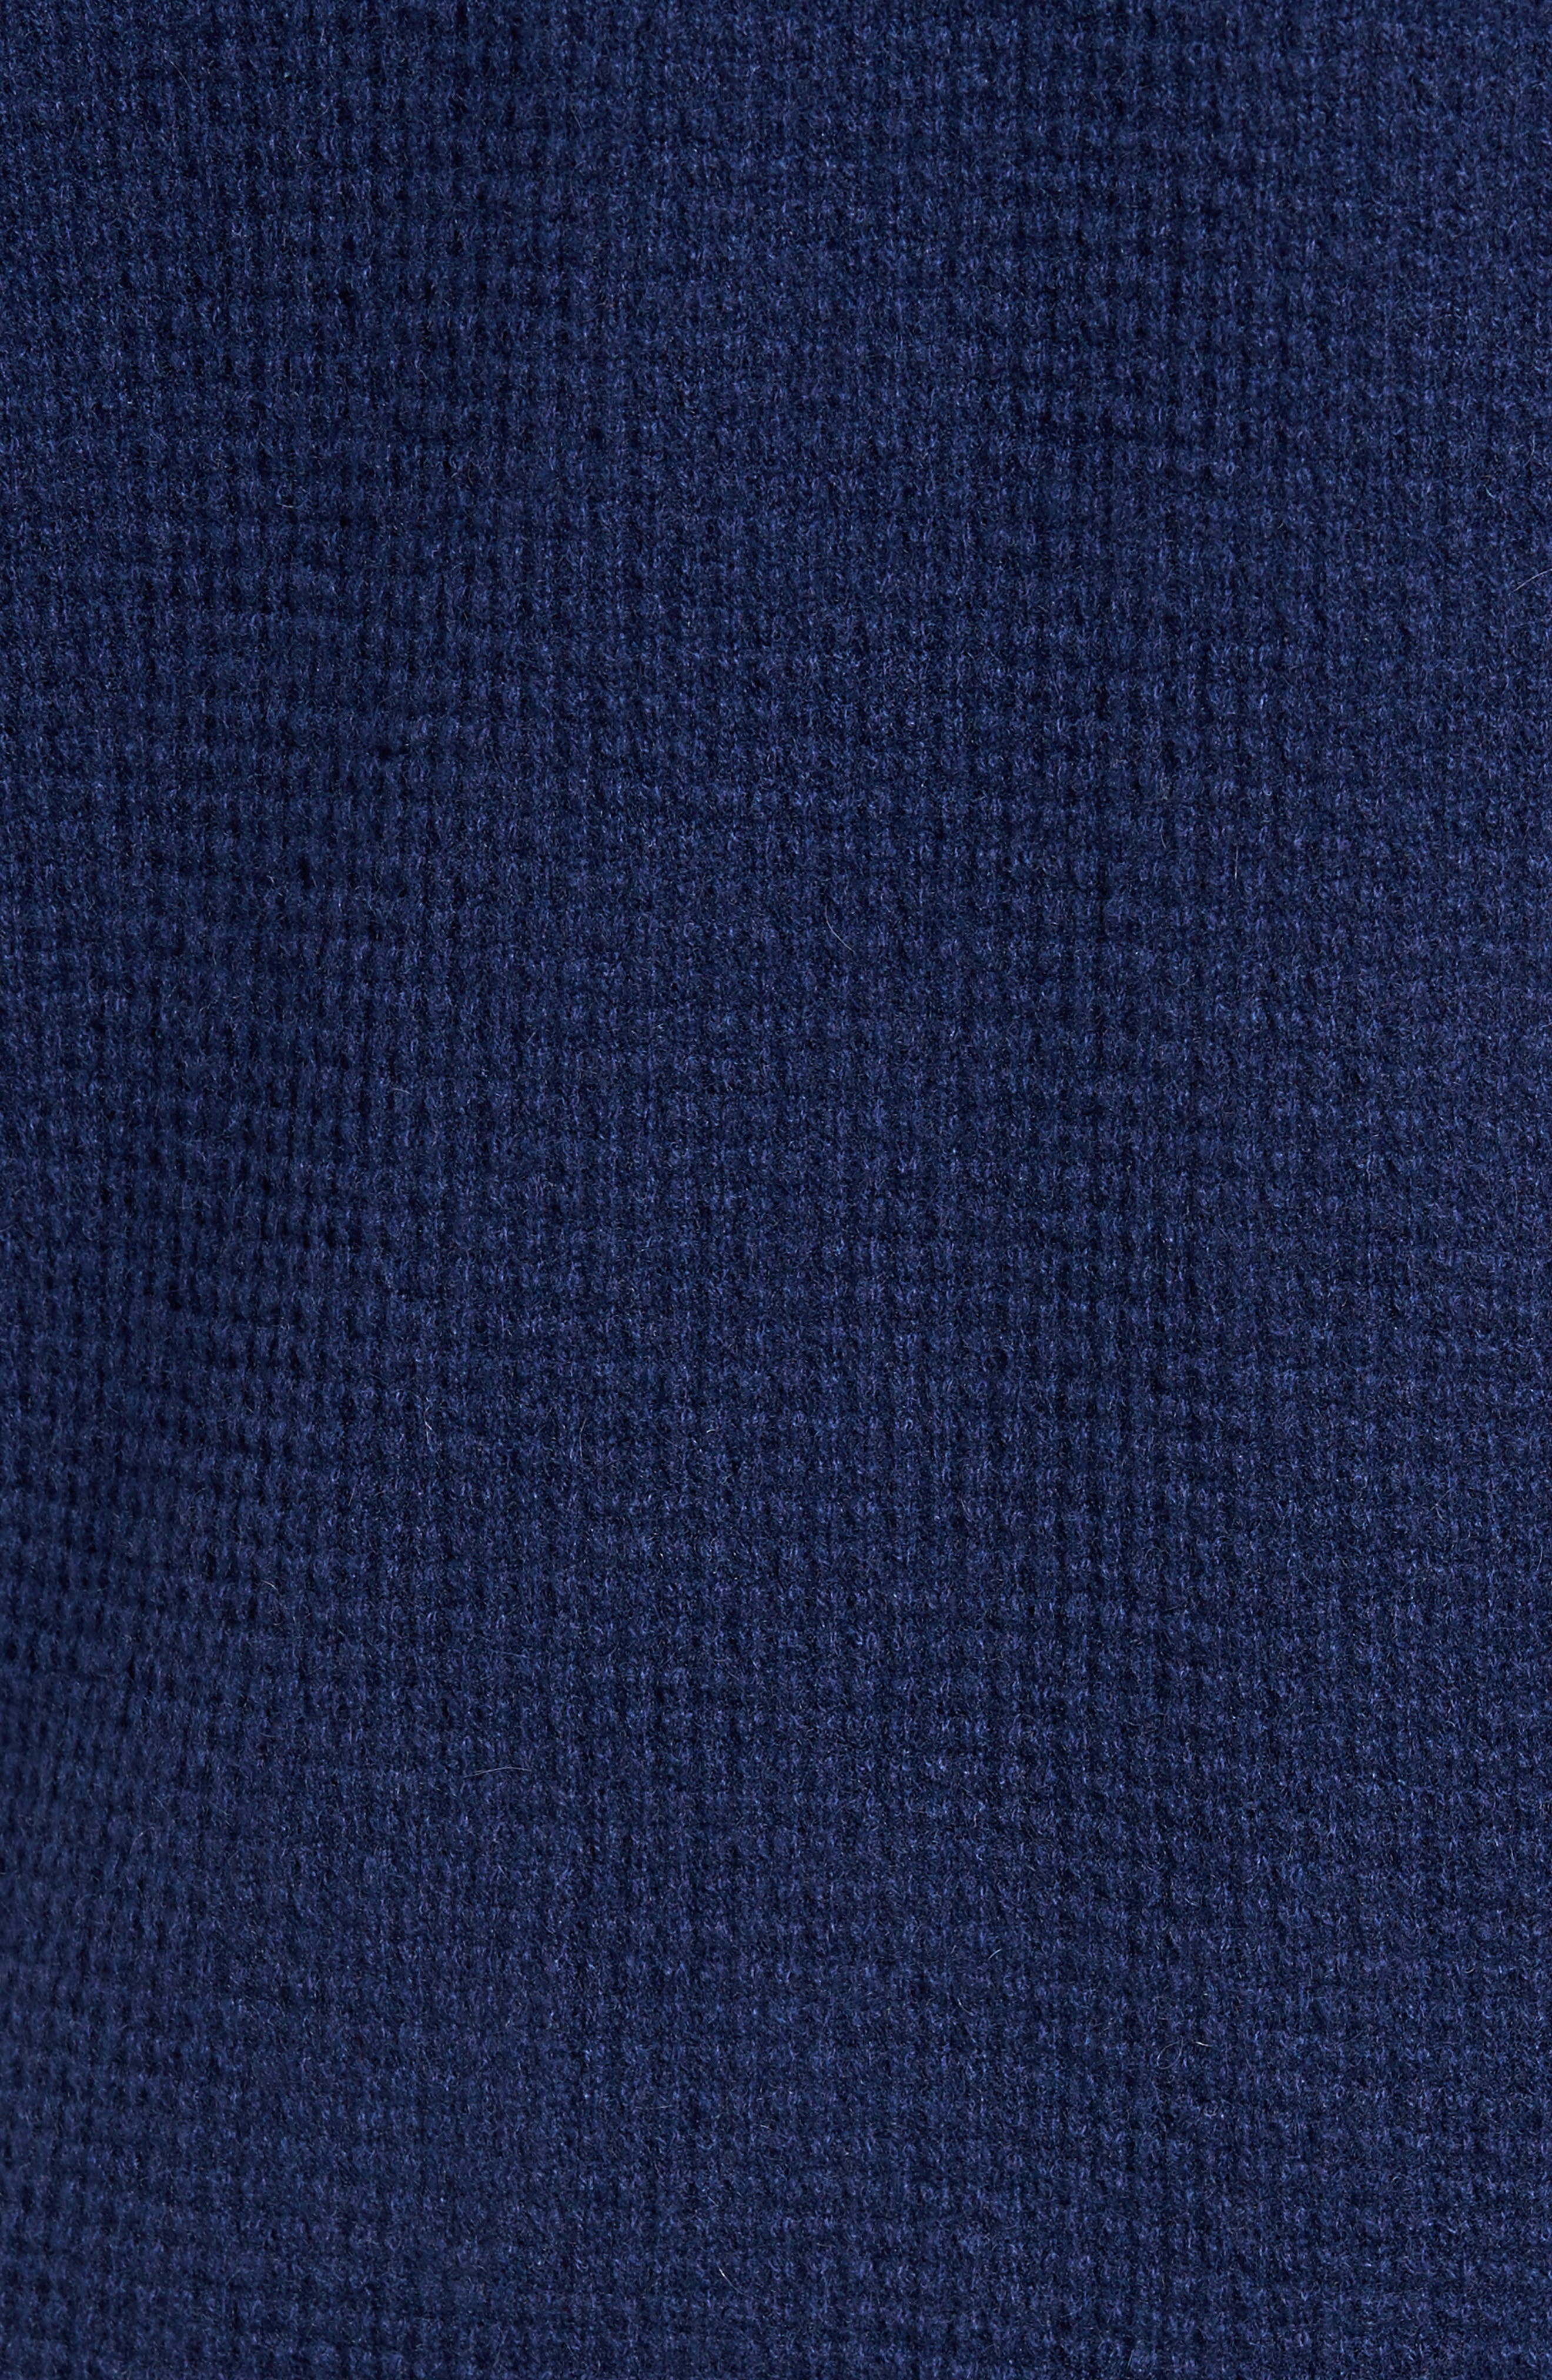 Thermal Cashmere Sweater,                             Alternate thumbnail 5, color,                             Blue